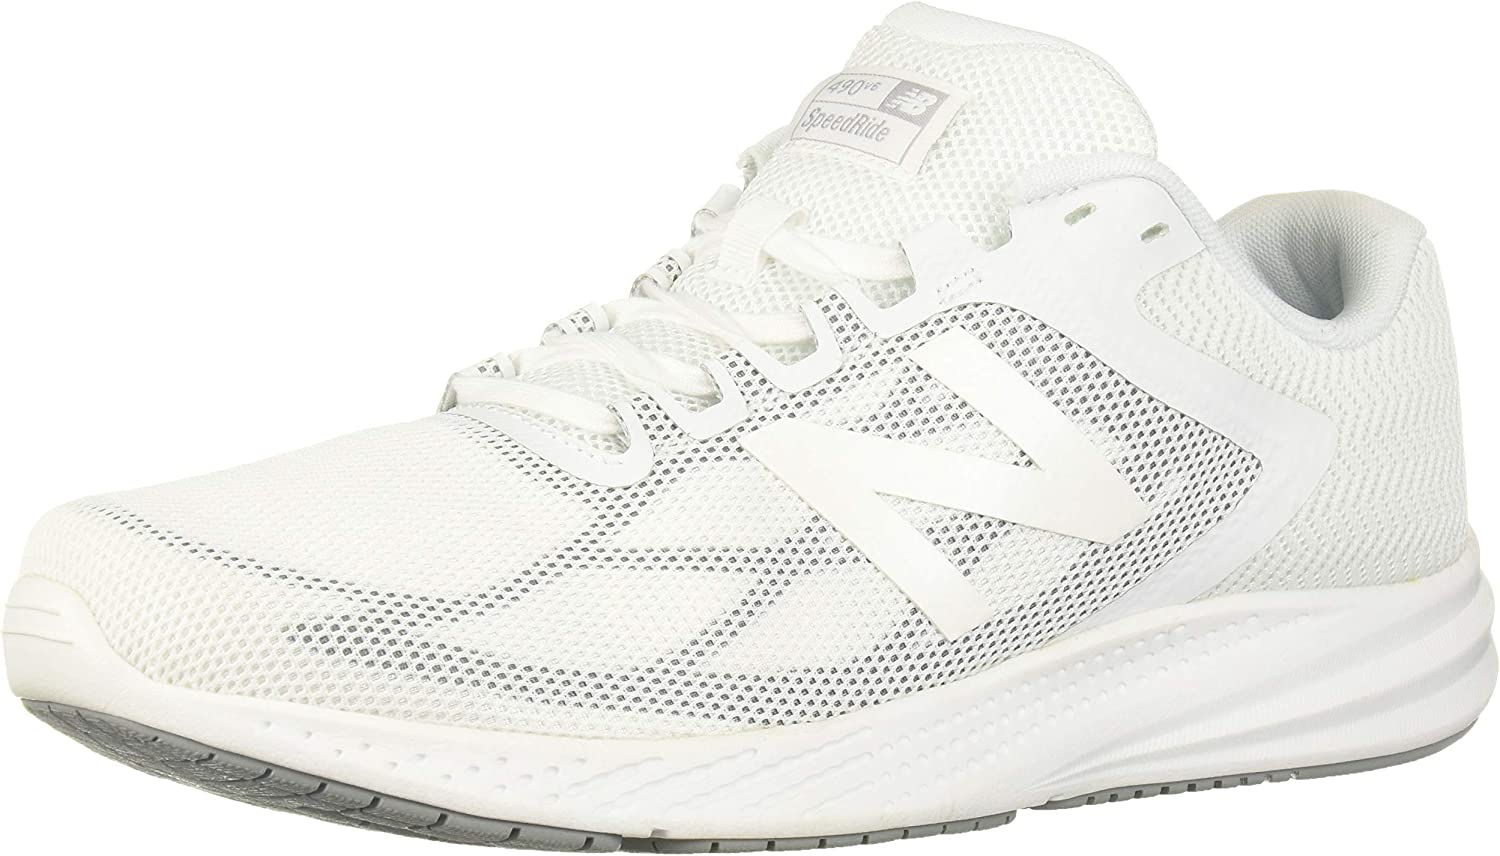 New Balance Men's Veniz V1 Fresh Foam Running Shoe